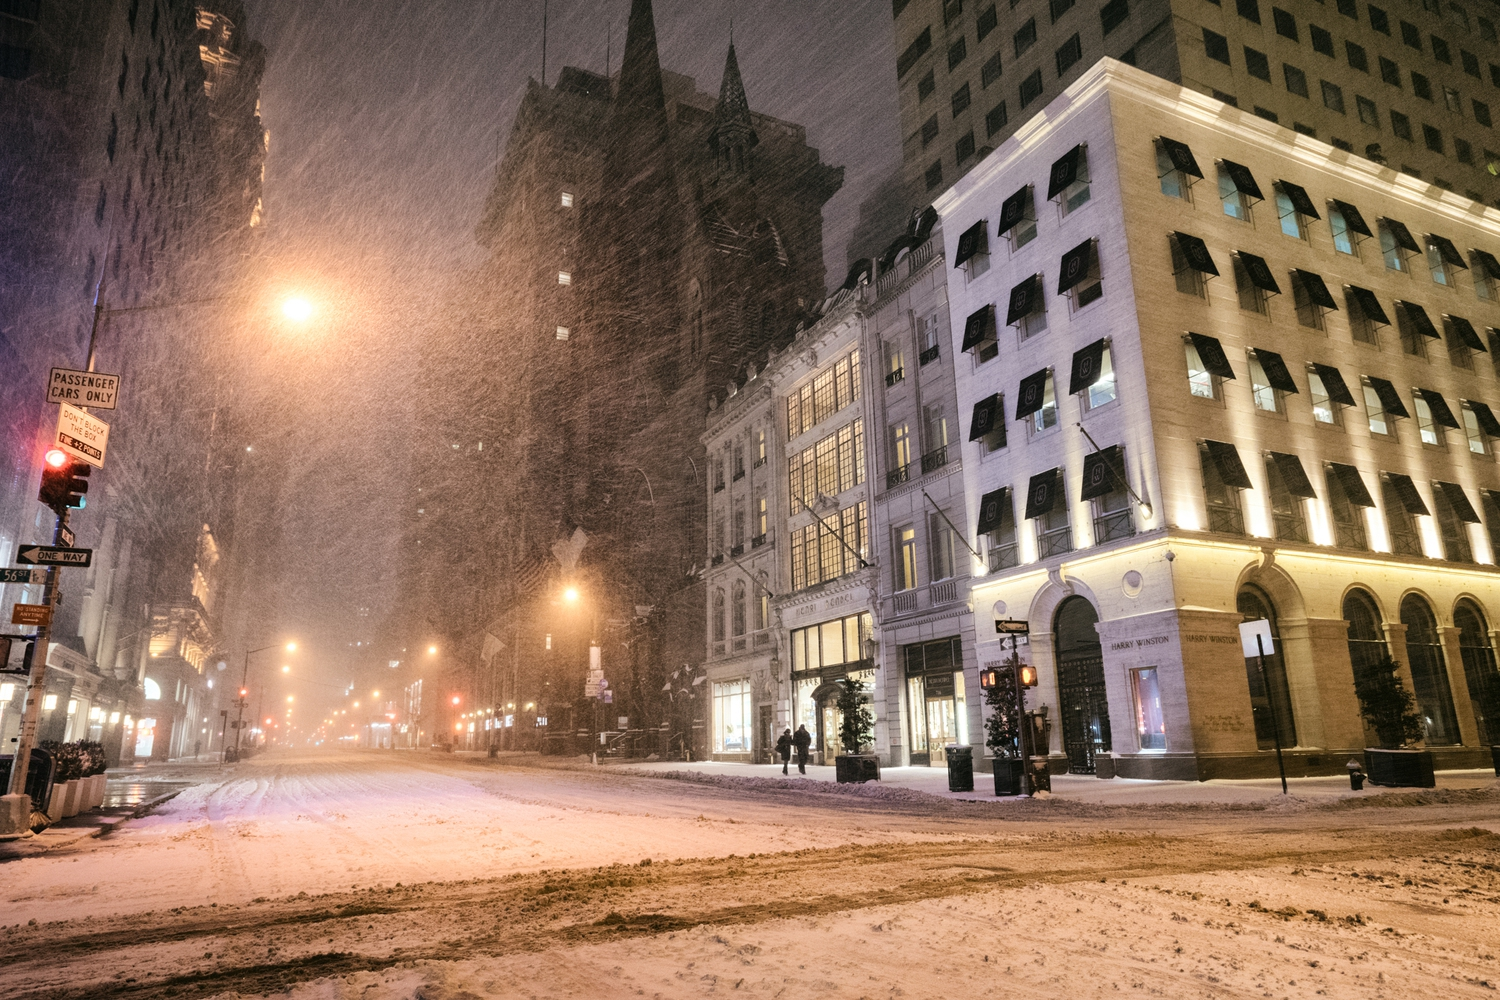 "New York City - Snow - Winter Storm Juno - Empty 5th Avenue - Henri Bendel | Juno: The first snowstorm of 2015 in New York City.  ---  (Note: My <a href=""http://www.amazon.com/gp/product/1440339589/ref=as_li_tl?ie=UTF8&camp=1789&creative=9325&creativeASIN=1440339589&linkCode=as2&tag=nyththle0e-20&linkId=ER6GYT5FRYNMEPLF"" rel=""nofollow"">New York photography book</a> released worldwide in stores/online recently and has photos similar to this  [full info below])  ---  I have been photographing New York City during snowstorms at night for the past 5 years. When it comes to experiencing <a href=""http://nythroughthelens.com/tagged/snow"" rel=""nofollow"">New York City in the snow</a>, I relish the challenge. The more gusty, snowy, and brutal the storm, the more of a chance that I will be out in it traipsing around New York City with my cameras in tow.  When I heard that the MTA was suspending all transit service (and most vehicles) at 11 pm, I made the decision to take the train up to the Upper East Side prior to 11 pm to deposit myself up there with the intention of walking from the Upper East Side to Times Square and then walking the several miles back to the Lower East Side (whew!!).  The streets were eerily empty.  Emptier than they are usually at night during snowfall. Since there was a ban on all vehicles aside from snow plows and emergency services, there were practically no cars at all on the streets. Even taxis were banned from the streets!  I walked in the middle of avenues and streets that are usually teeming with cars.  There was an eerie sense of calm.  It was magical.   ---  This is part of a post that I posted to my NYC photography blog. If you are curious enough to look at the photos there, here is the link to the post:  <a href=""http://nythroughthelens.com/post/109291619025/new-york-city-snow-winter-storm-juno-i"" rel=""nofollow"">New York City - Winter Storm Juno</a>   ----  * As mentioned above - My New York City coffee table book that released in stores/online worldwide recently.   Tons of information about my <a href=""http://www.amazon.com/gp/product/1440339589/ref=as_li_tl?ie=UTF8&camp=1789&creative=9325&creativeASIN=1440339589&linkCode=as2&tag=nyththle0e-20&linkId=ER6GYT5FRYNMEPLF"" rel=""nofollow"">New York photography book</a> with sample pages (including where to order and what stores are carrying it) here:  <a href=""http://nythroughthelens.com/post/92873566010/ny-through-the-lens-the-book-i-am-super"" rel=""nofollow"">NY Through The Lens: A New York Coffee Table Book</a> ---   View my New York City photography at my website <a href=""http://nythroughthelens.com/"" rel=""nofollow"">NY Through The Lens</a>.  View my Travel photography at my travel blog: <a href=""http://travelinglens.me/"" rel=""nofollow"">Traveling Lens</a>.  Interested in my work and have questions about PR and media? Check out my:  <a href=""http://nythroughthelens.com/about"" rel=""nofollow"">About Page</a> 